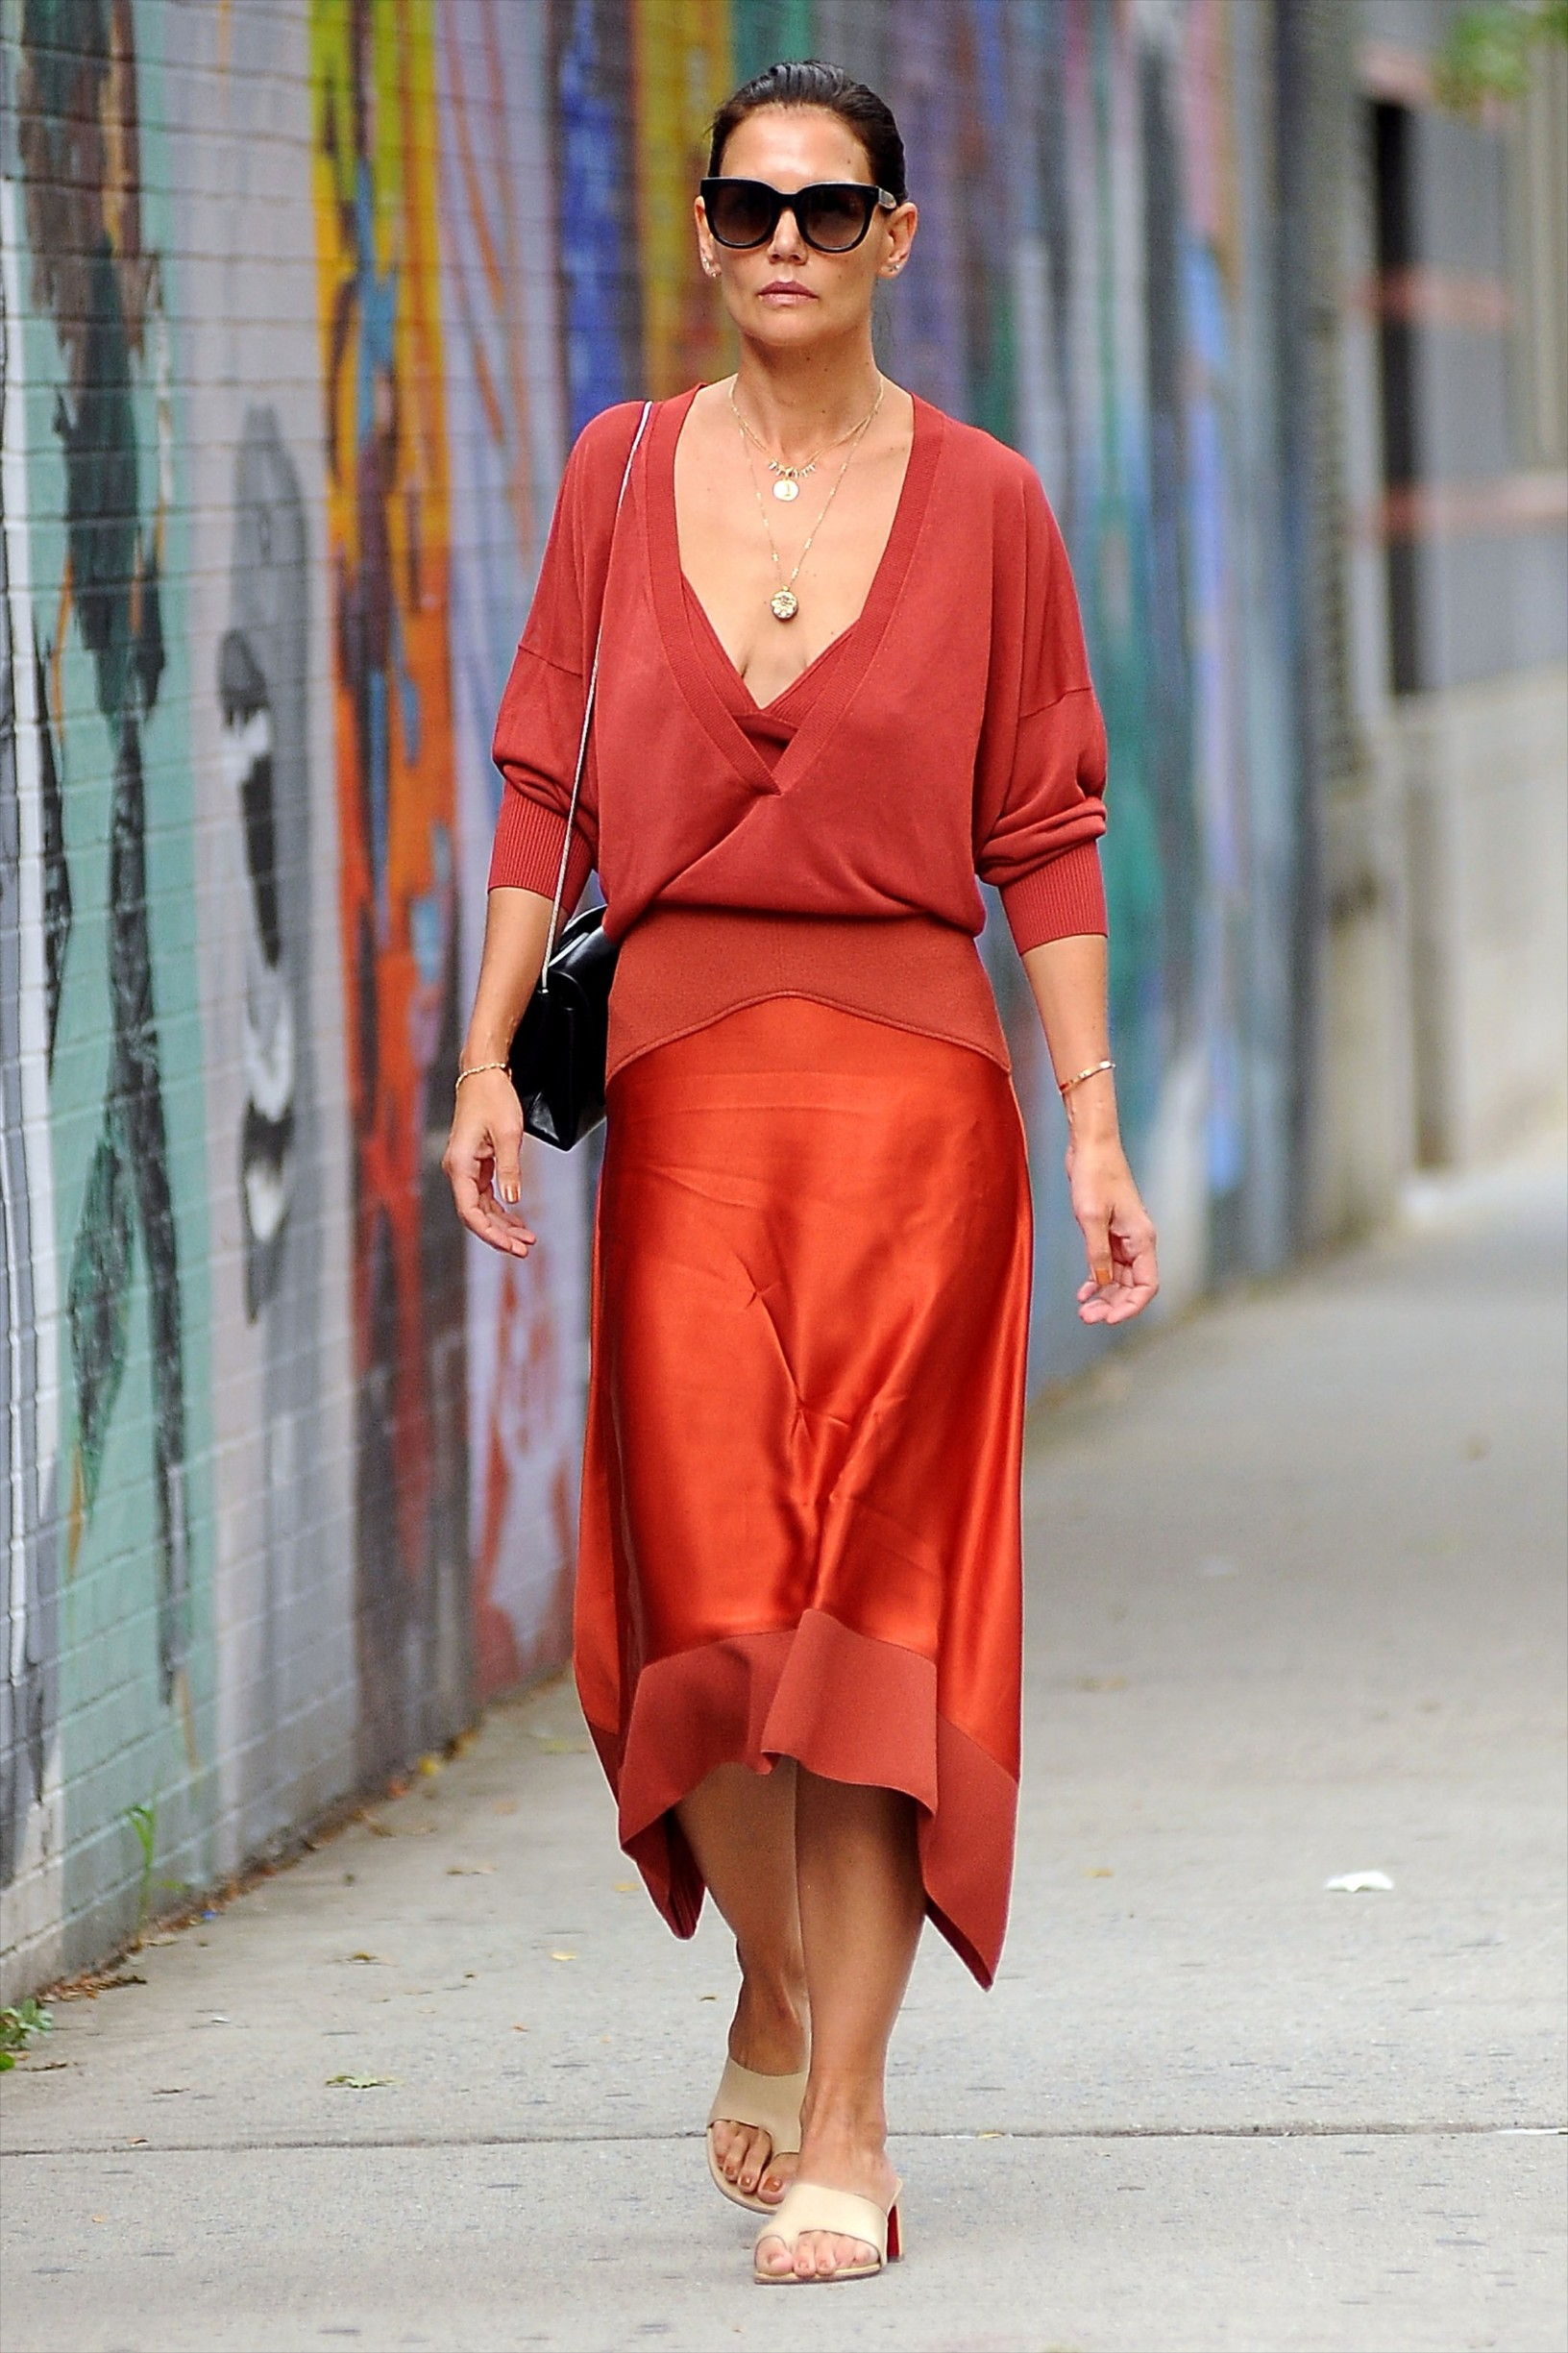 -New York, NY - 20190906 Katie Holmes wears a red dress as she heads out for the day in NYC.  -PICTURED: Katie Holmes -, Image: 469439779, License: Rights-managed, Restrictions: , Model Release: no, Credit line: Profimedia, INSTAR Images